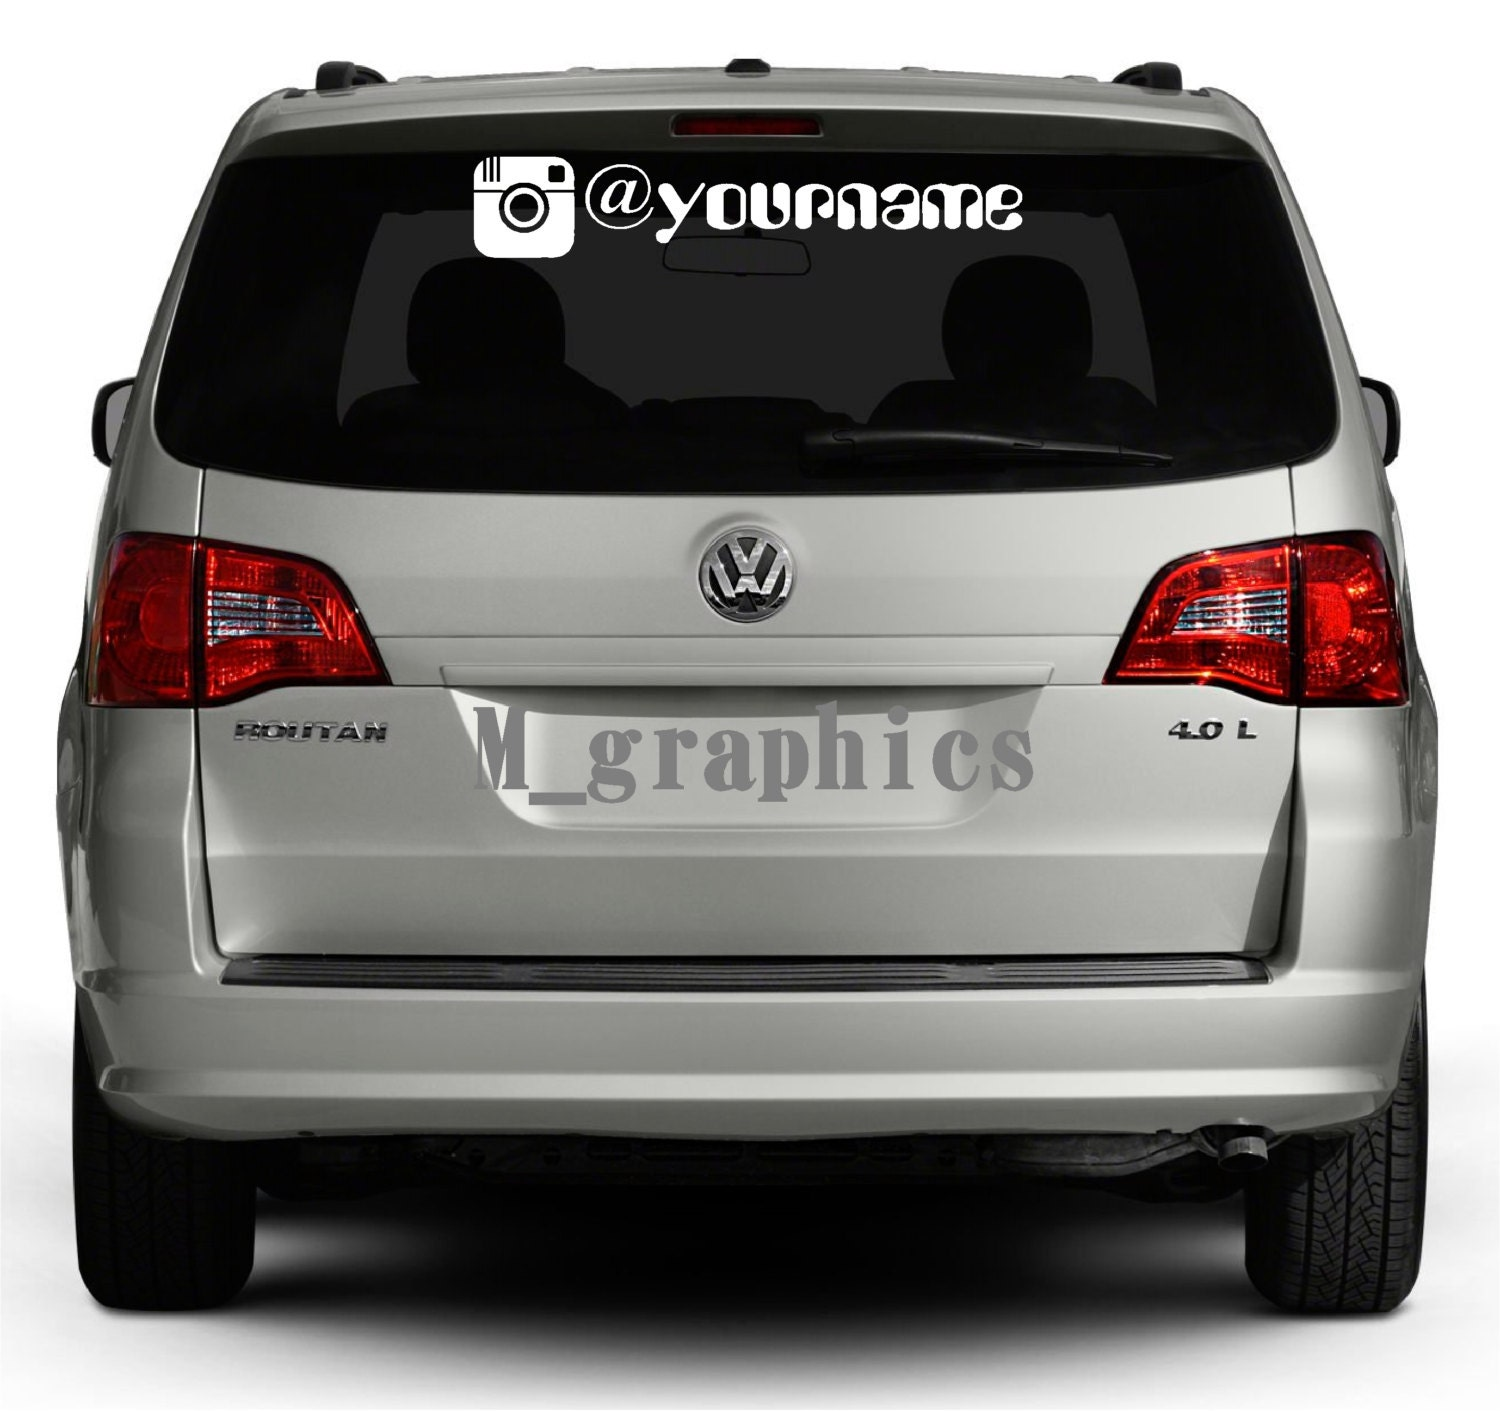 Car decal design singapore - Instagram Logo Vinyl Decal Sticker Custom Lettering Vehicle Decal